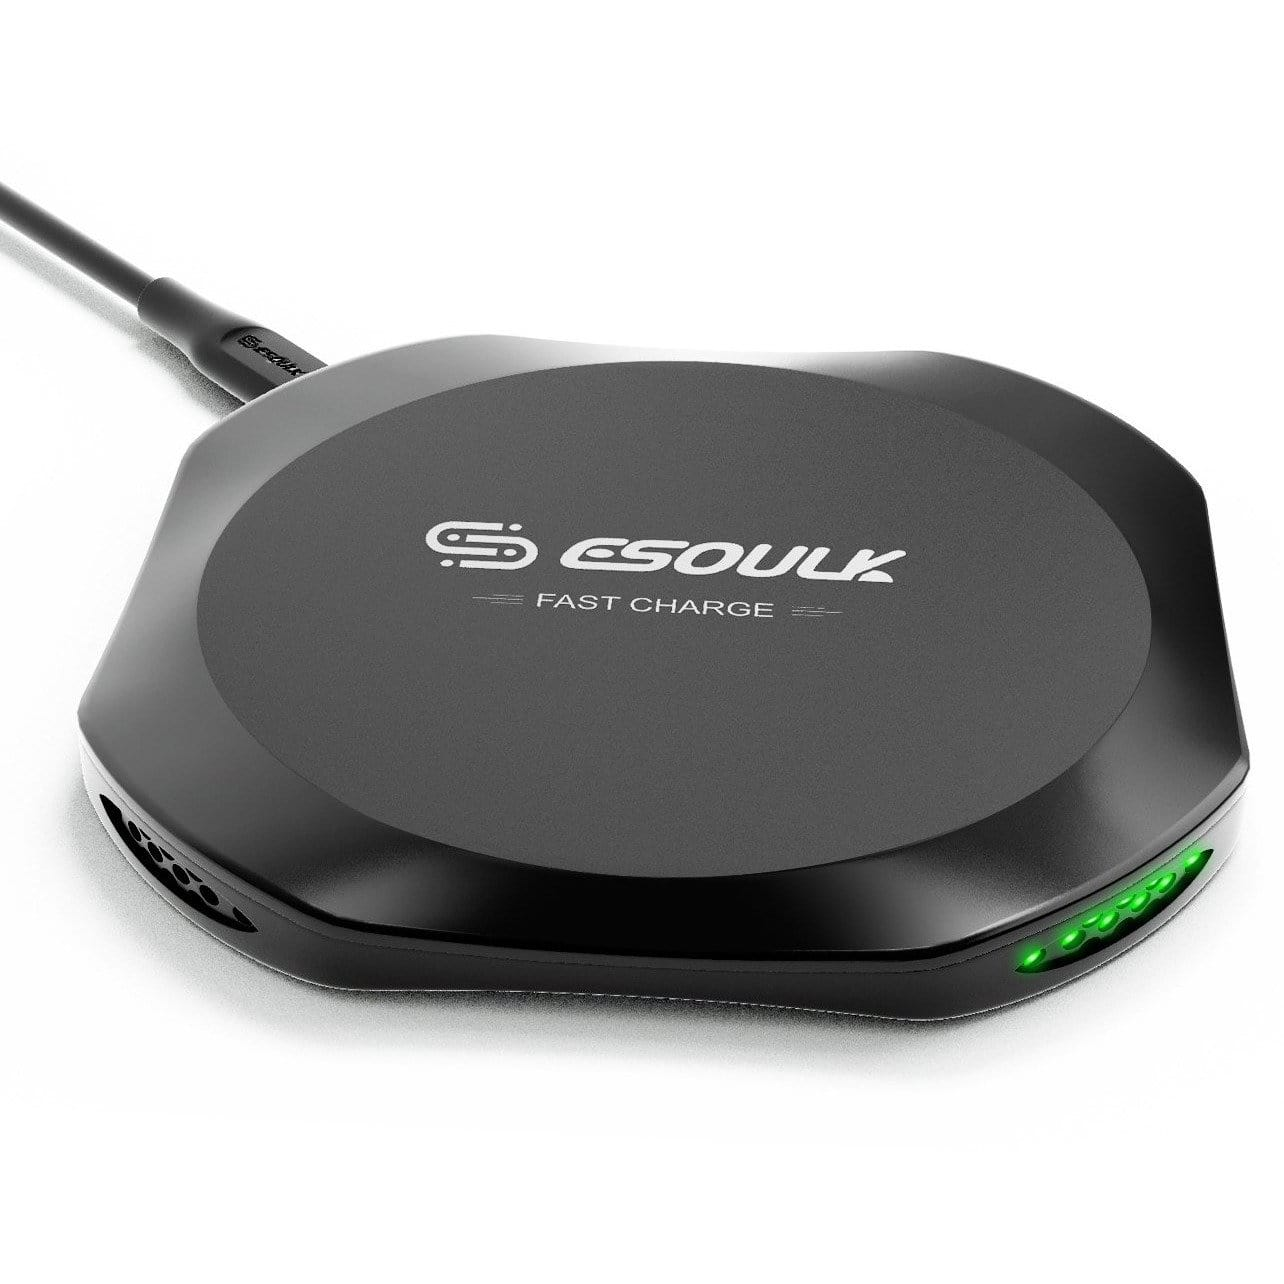 Esoulk Wireless Charger Black 10W EW01P-BK